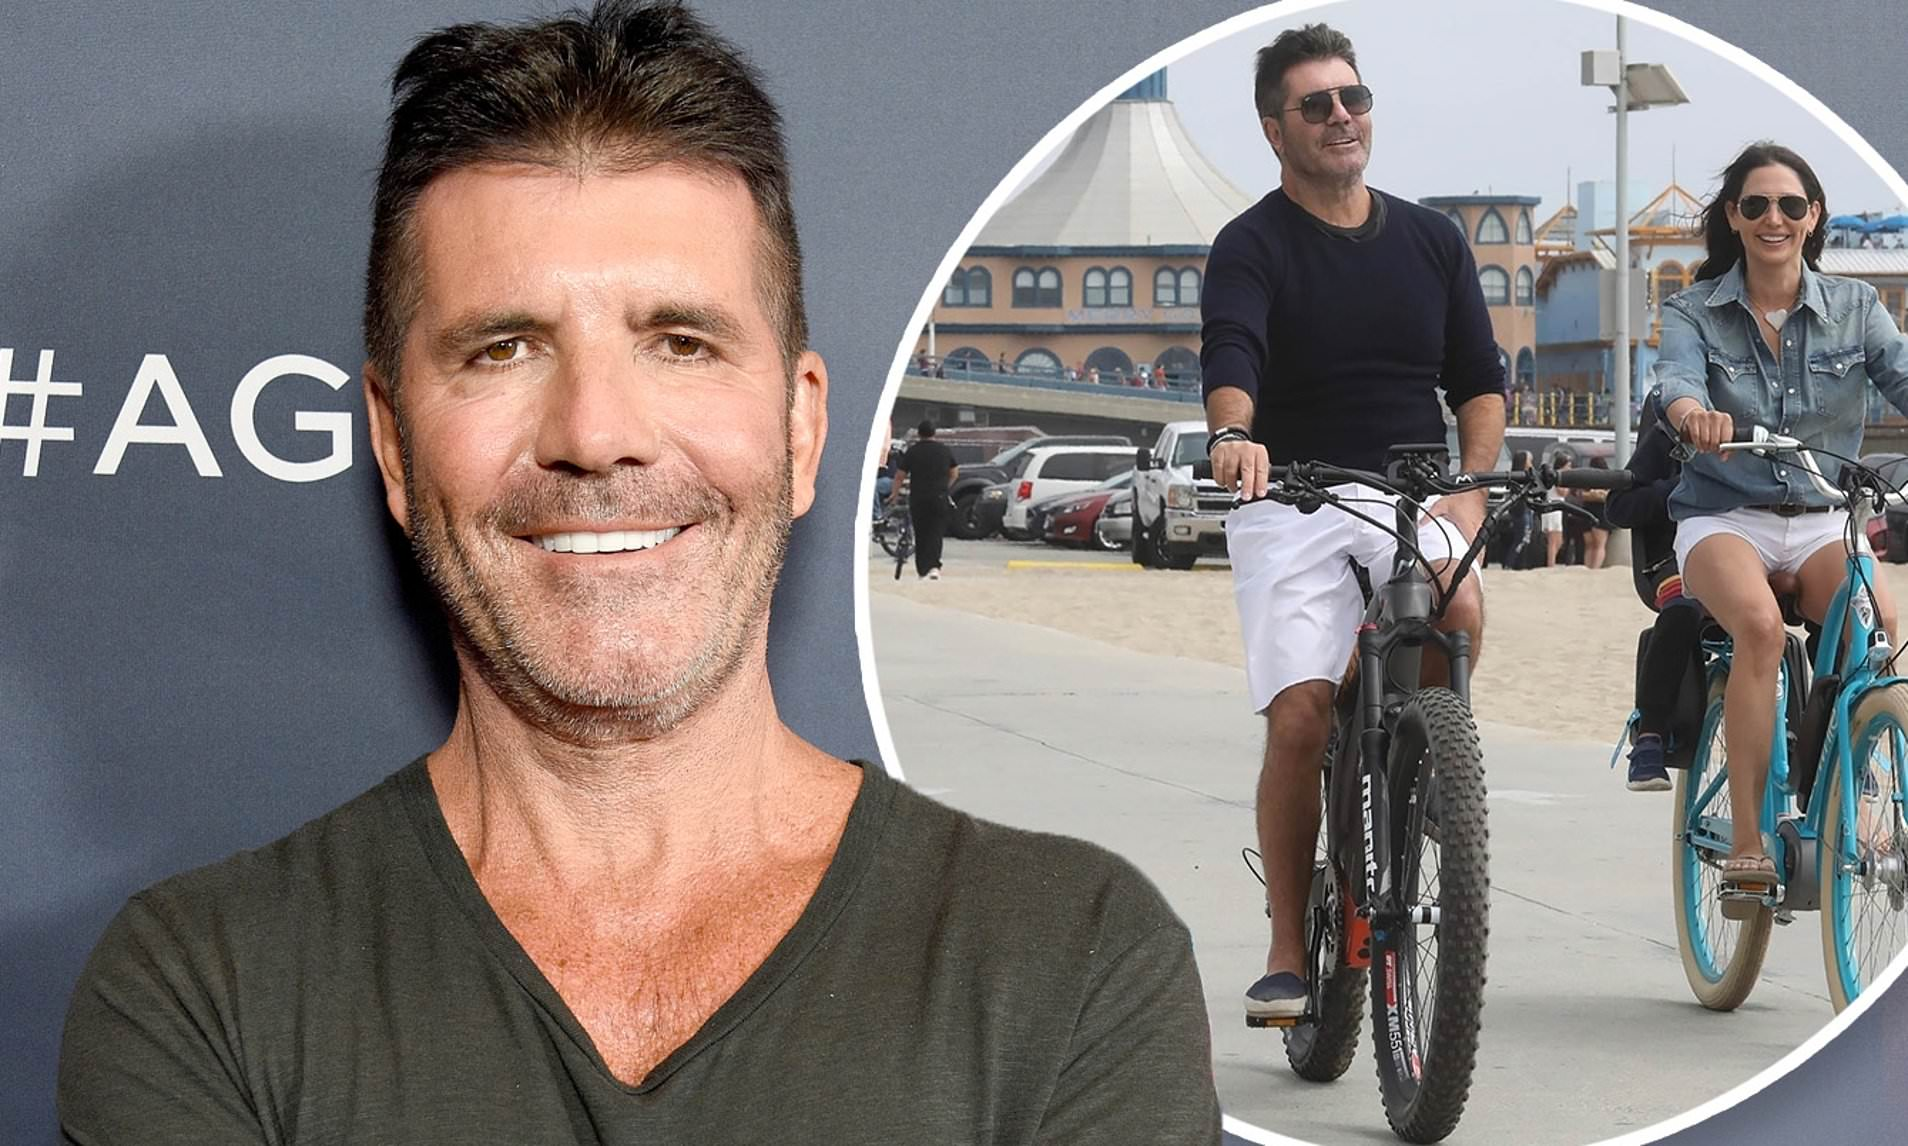 Simon Cowell is set to make his first appearance on TV since he was involved in a bike accident. The X Factor judge broke his back after falling off his bike at the beginning of August.